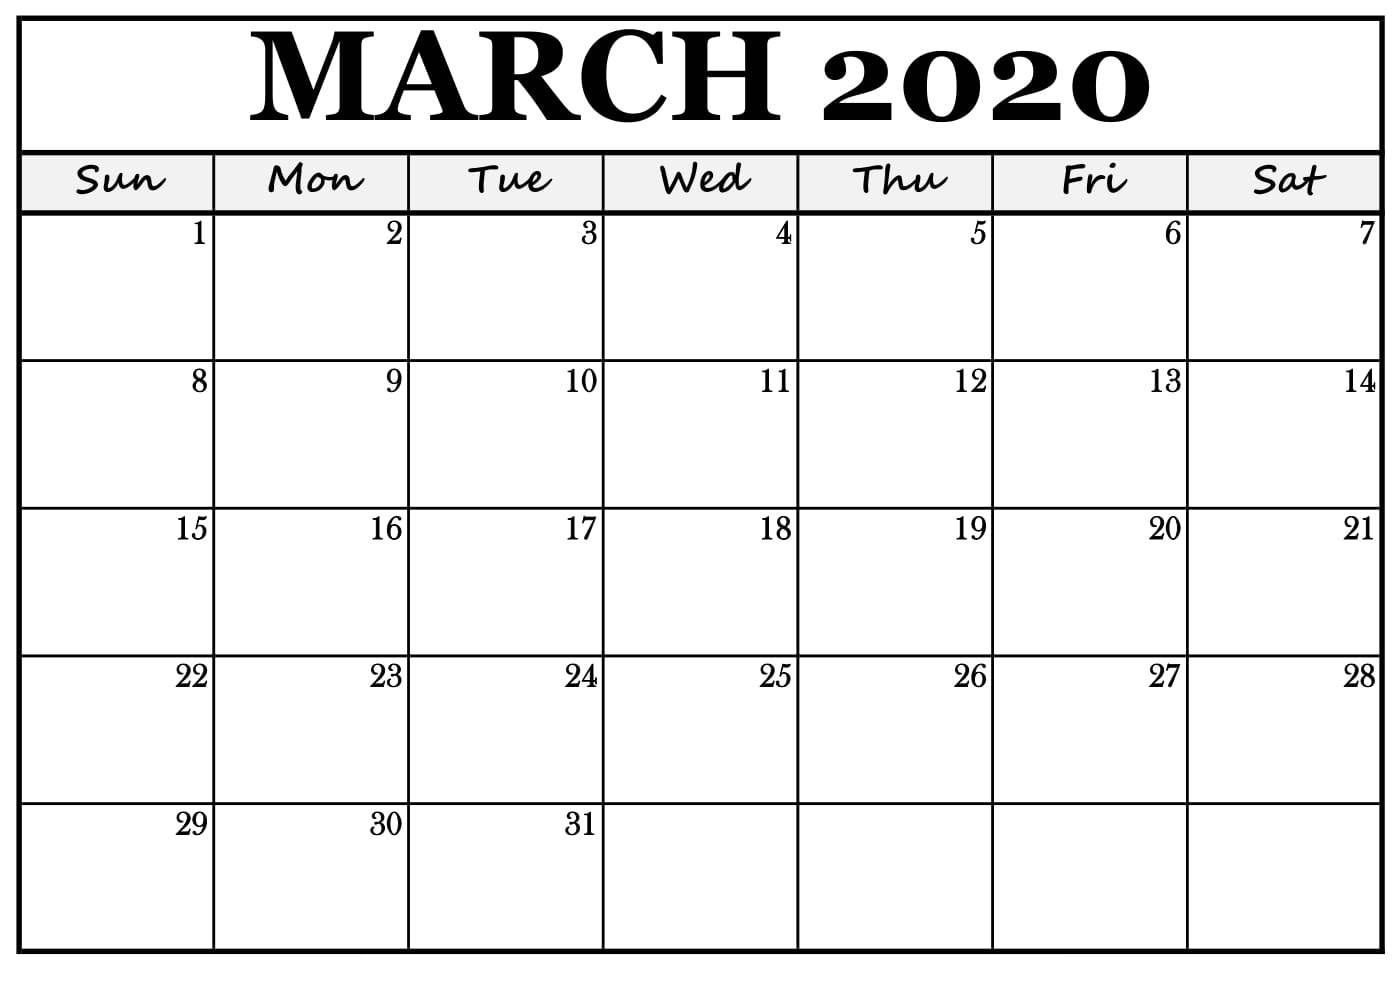 Editable Mar 2020 Calendar Pdf Word Excel Printable Template With